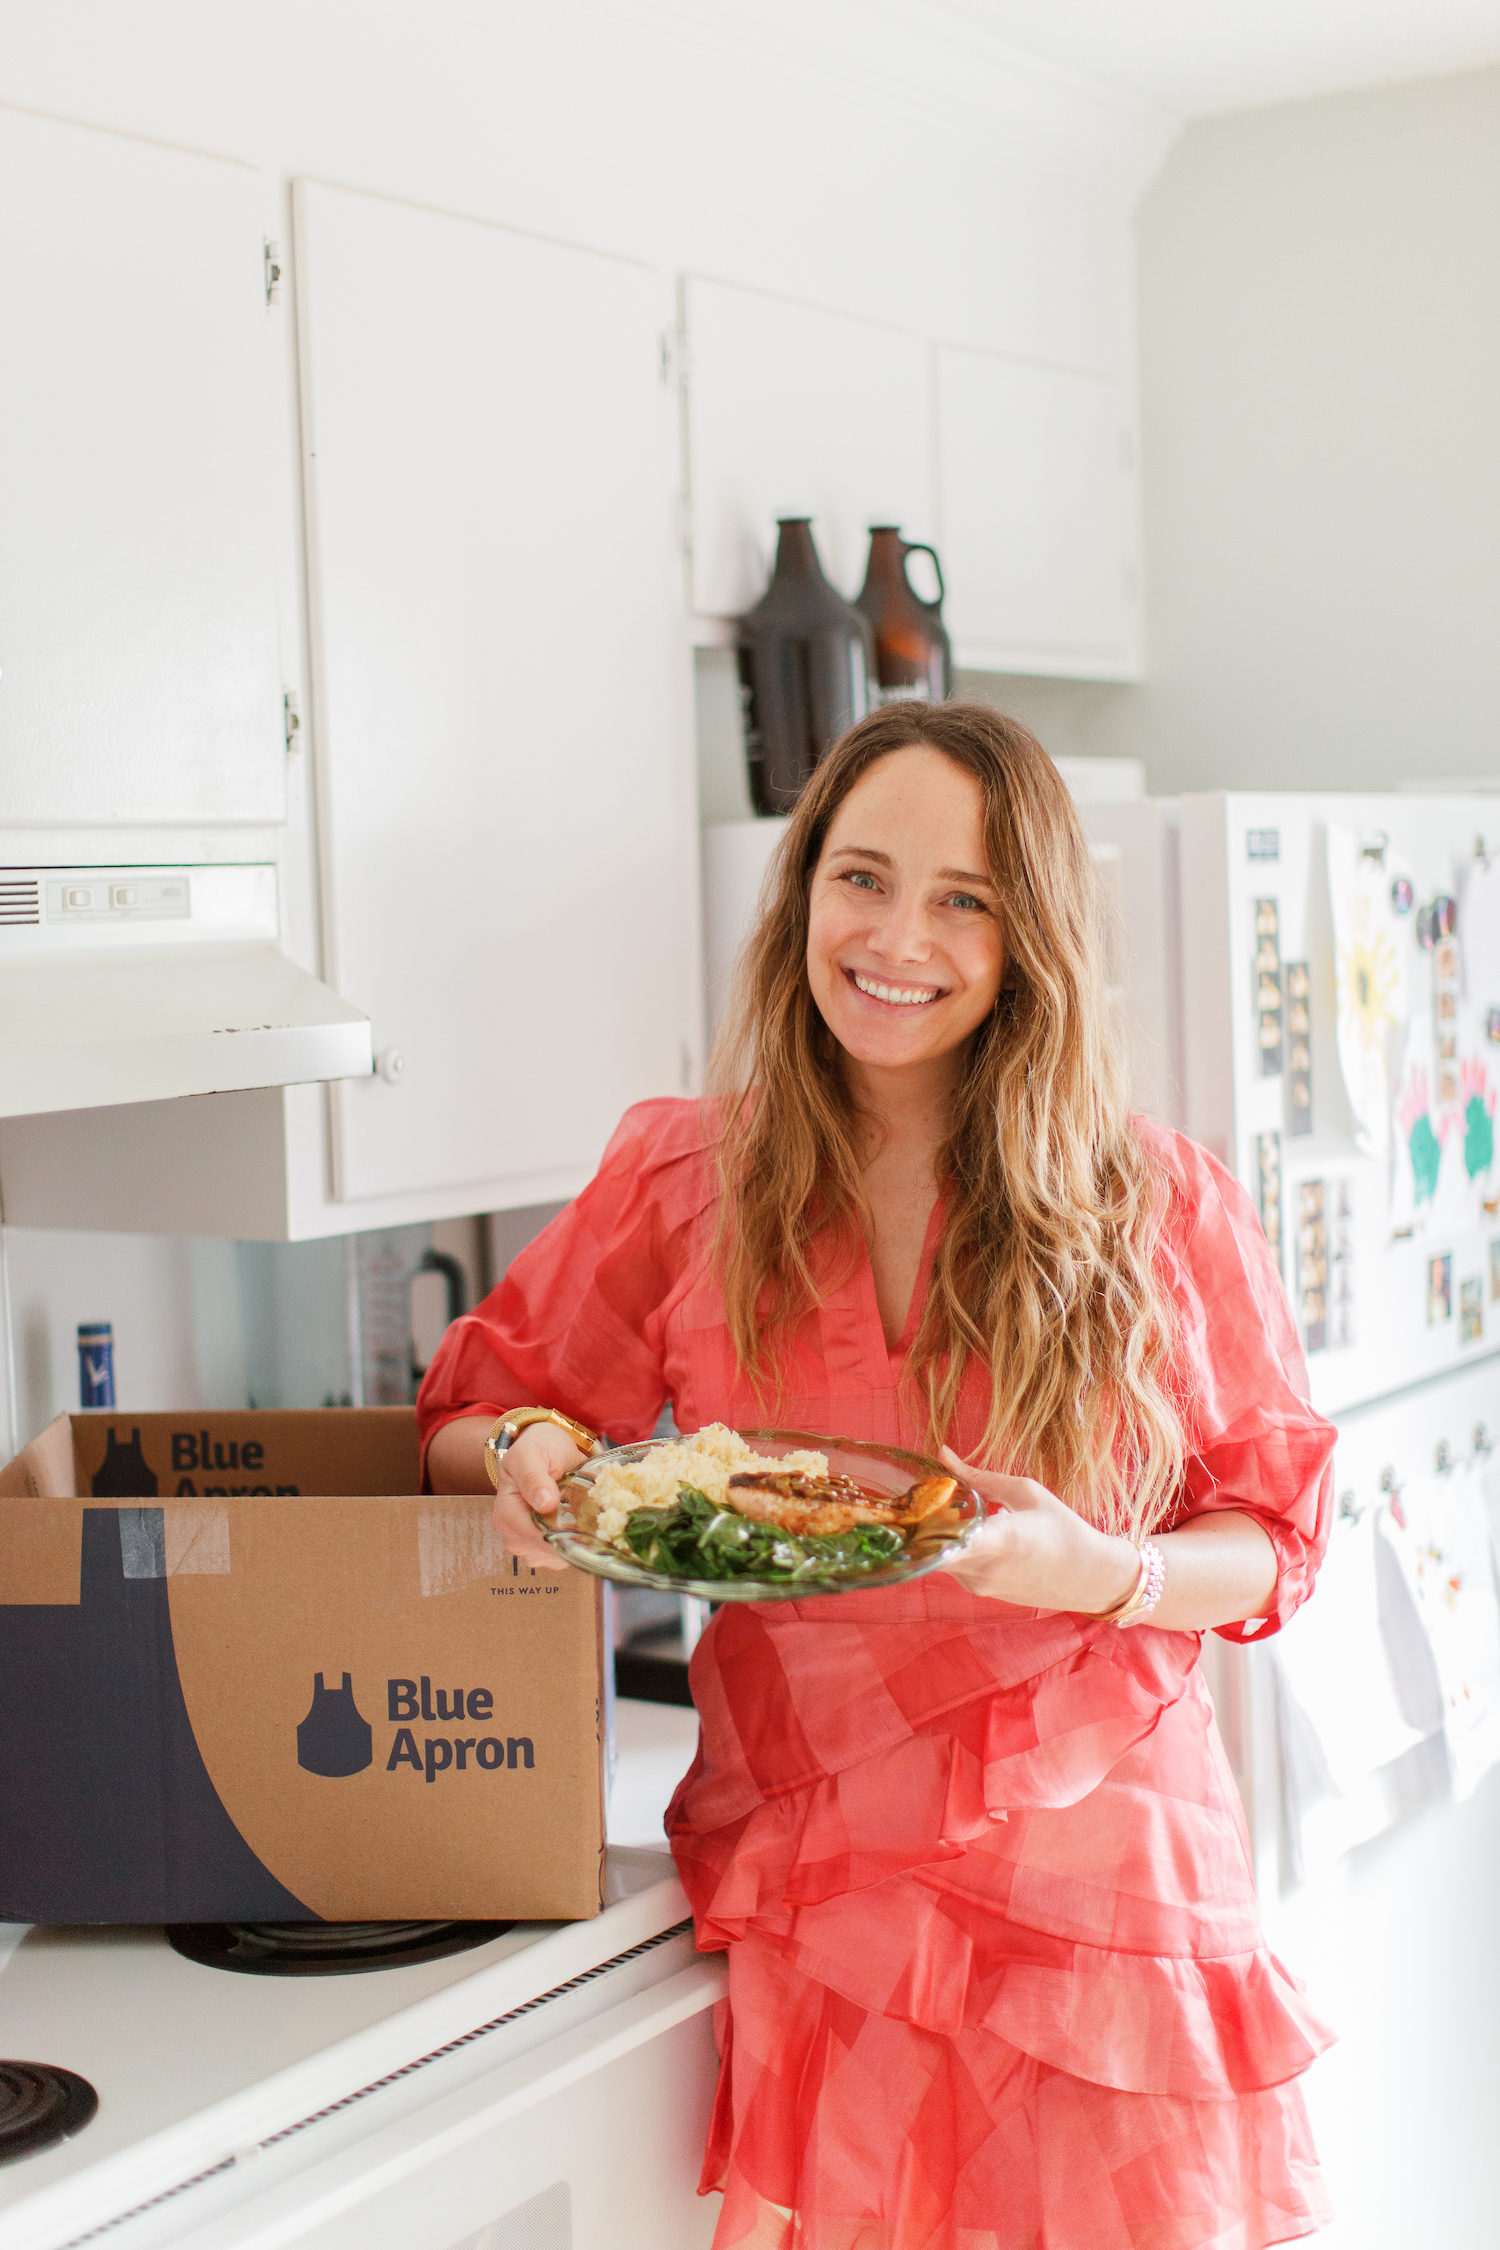 My New Favorite Thing About Blue Apron